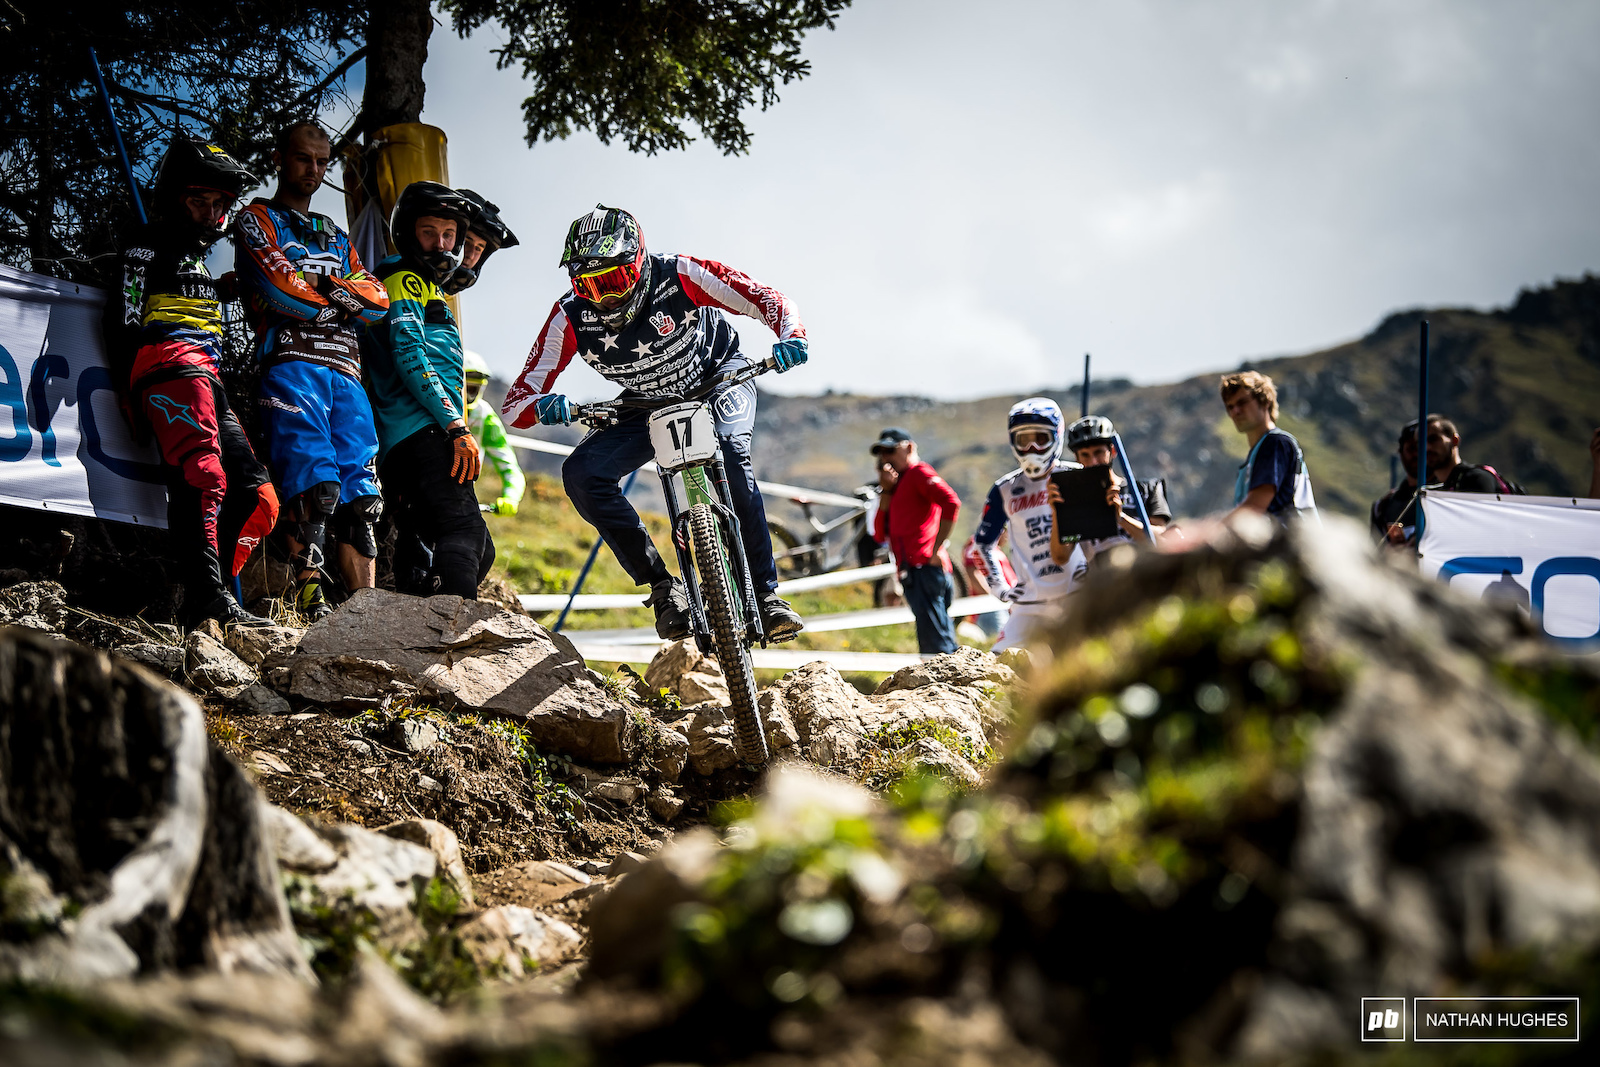 Team rumours are swirling and Charlie Harrison wants a big result to end a season as a mainstay top 20 rider.